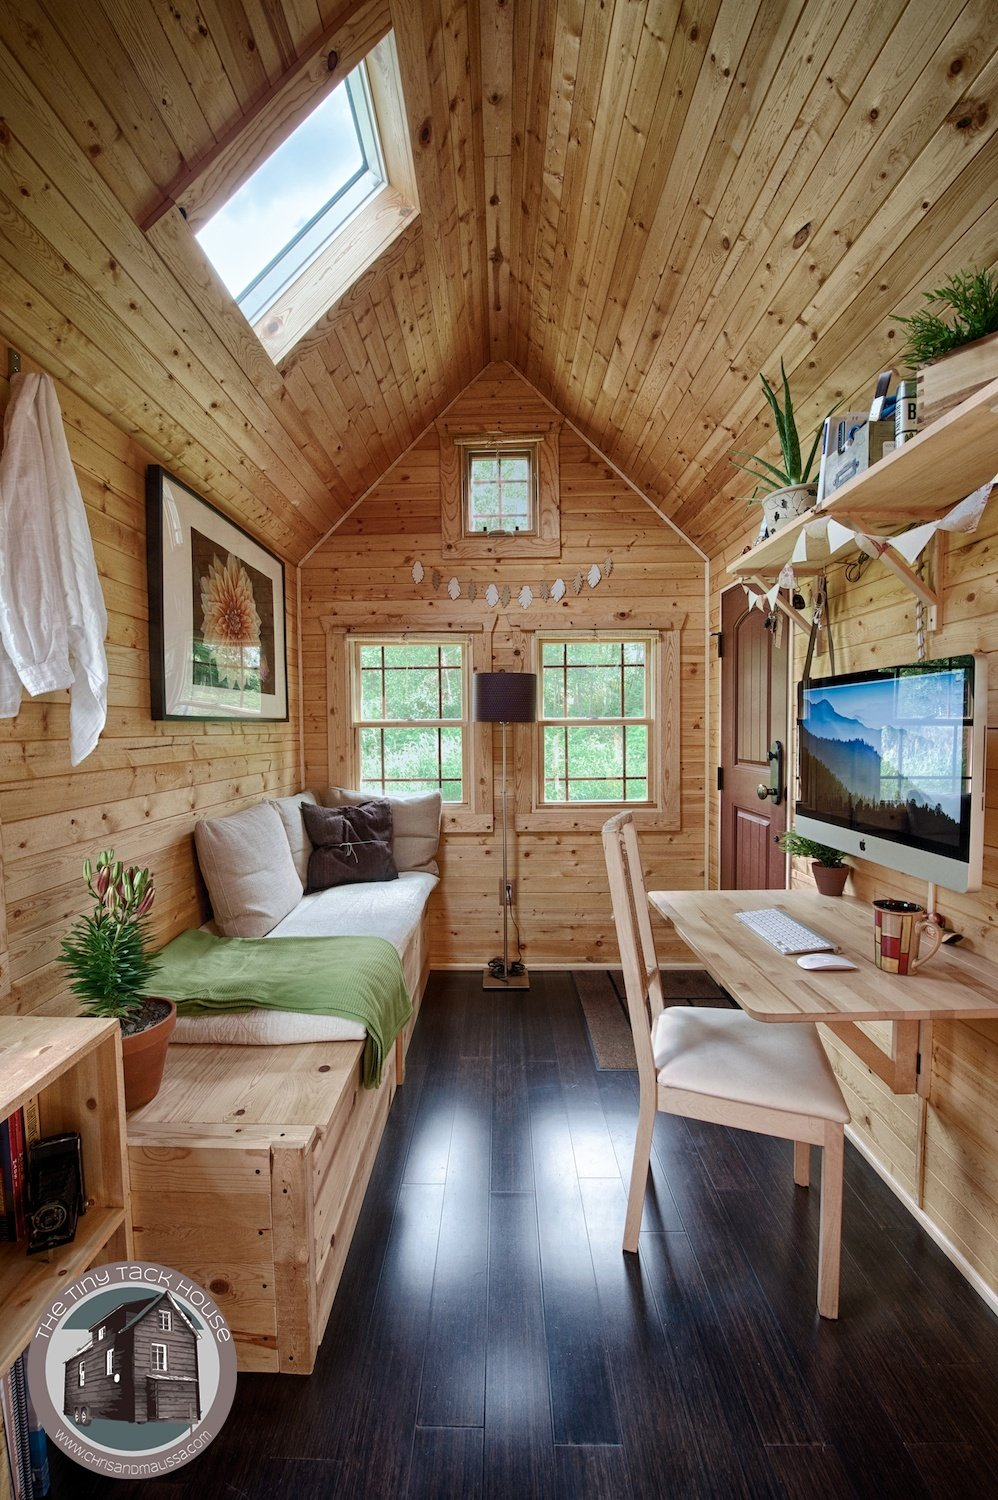 Tiny Home Interior Cool 16 Tiny Houses You Wish You Could Live In